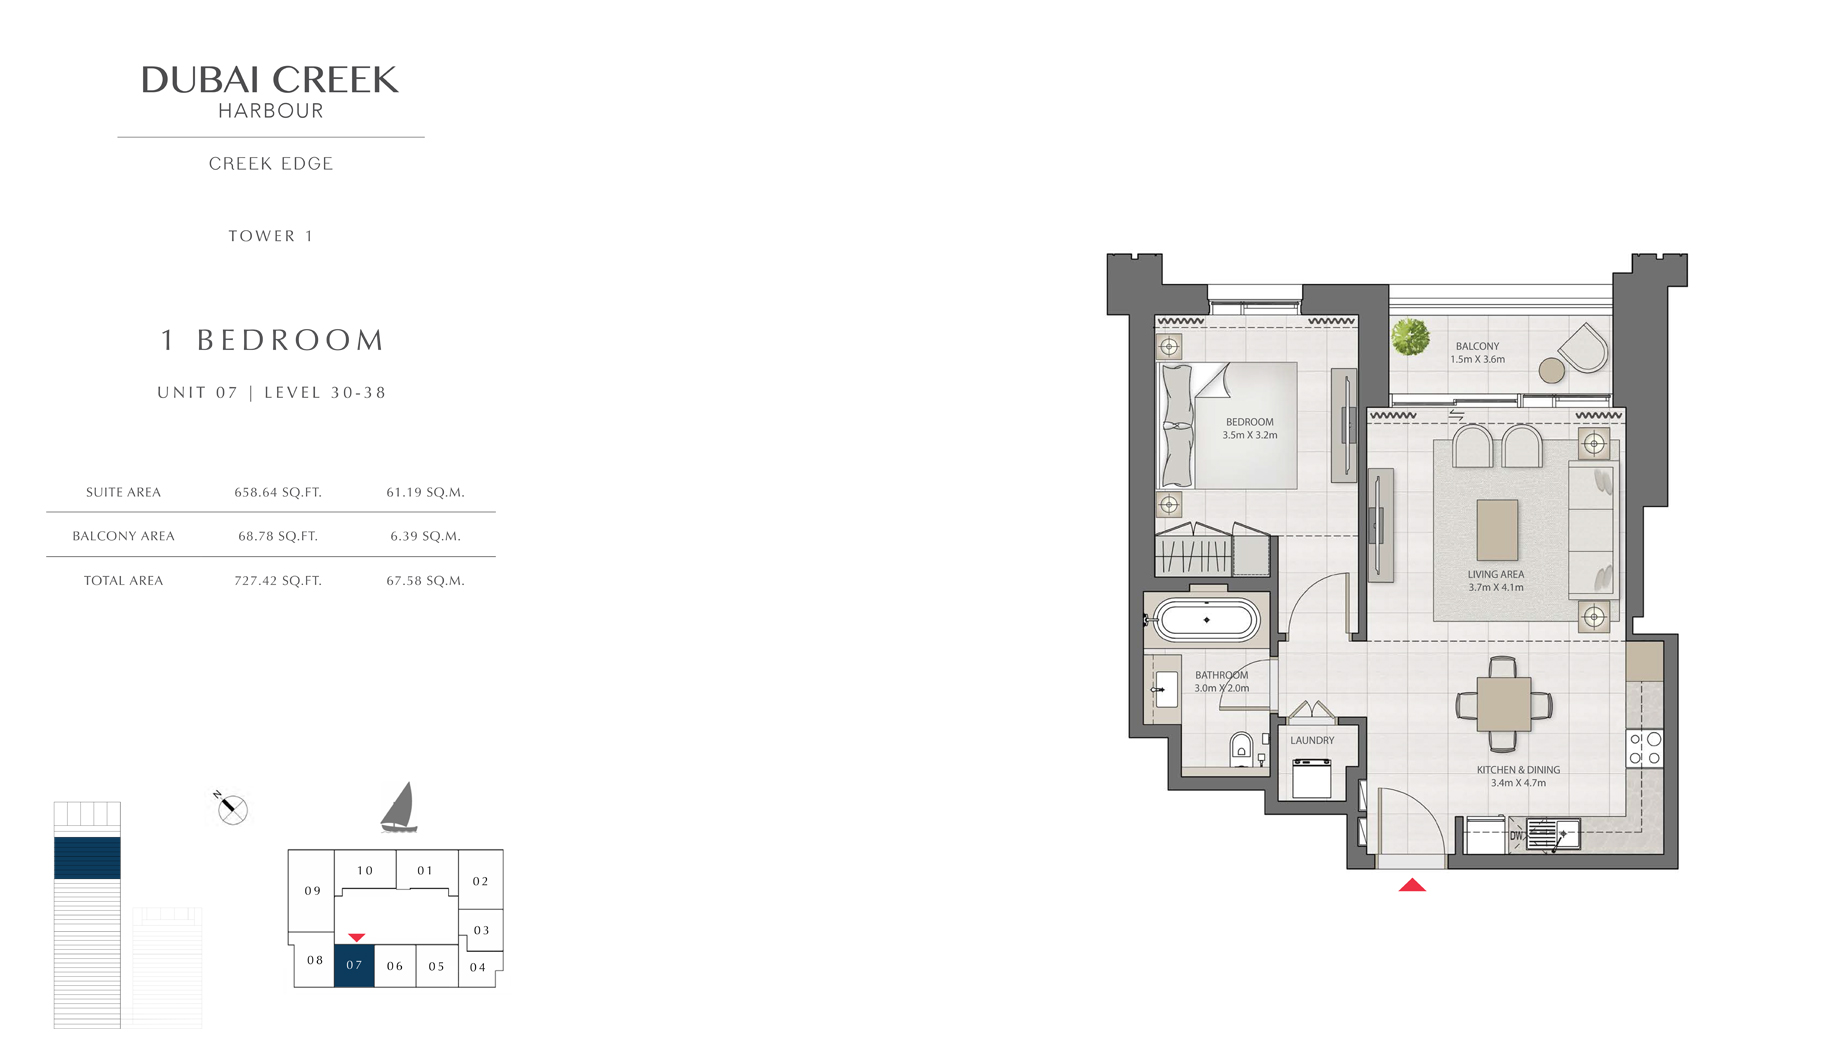 1 Bedroom Tower 1 Unit 07 Level 30-38 Size 727 sq.ft